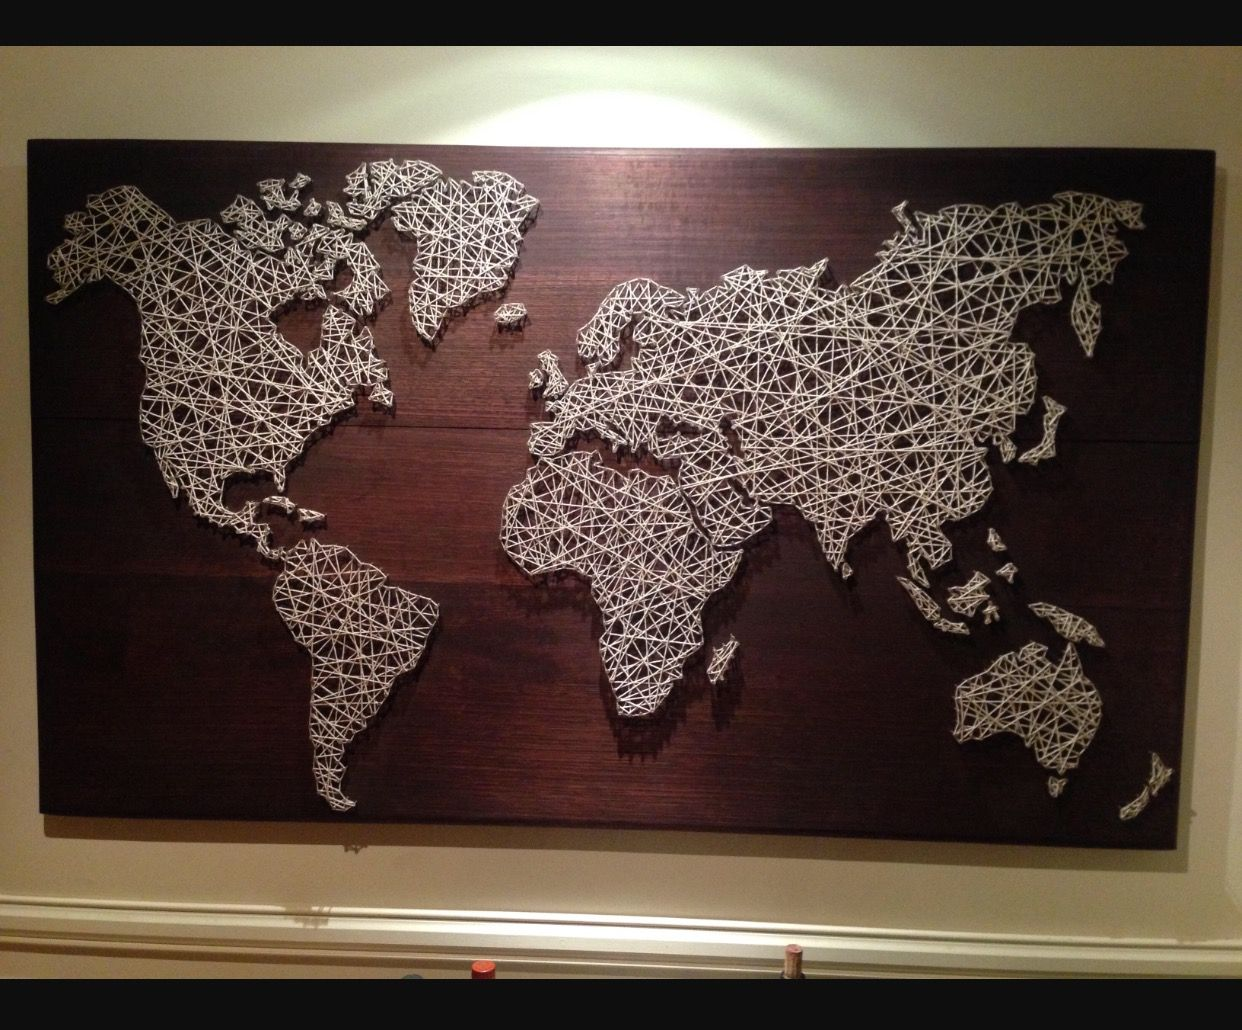 Pin by lauren porter on craft ideas pinterest string art craft other people take a more global approach like the artist who went big with an entire world map it took over a thousand nails and 150 meters of string to gumiabroncs Images